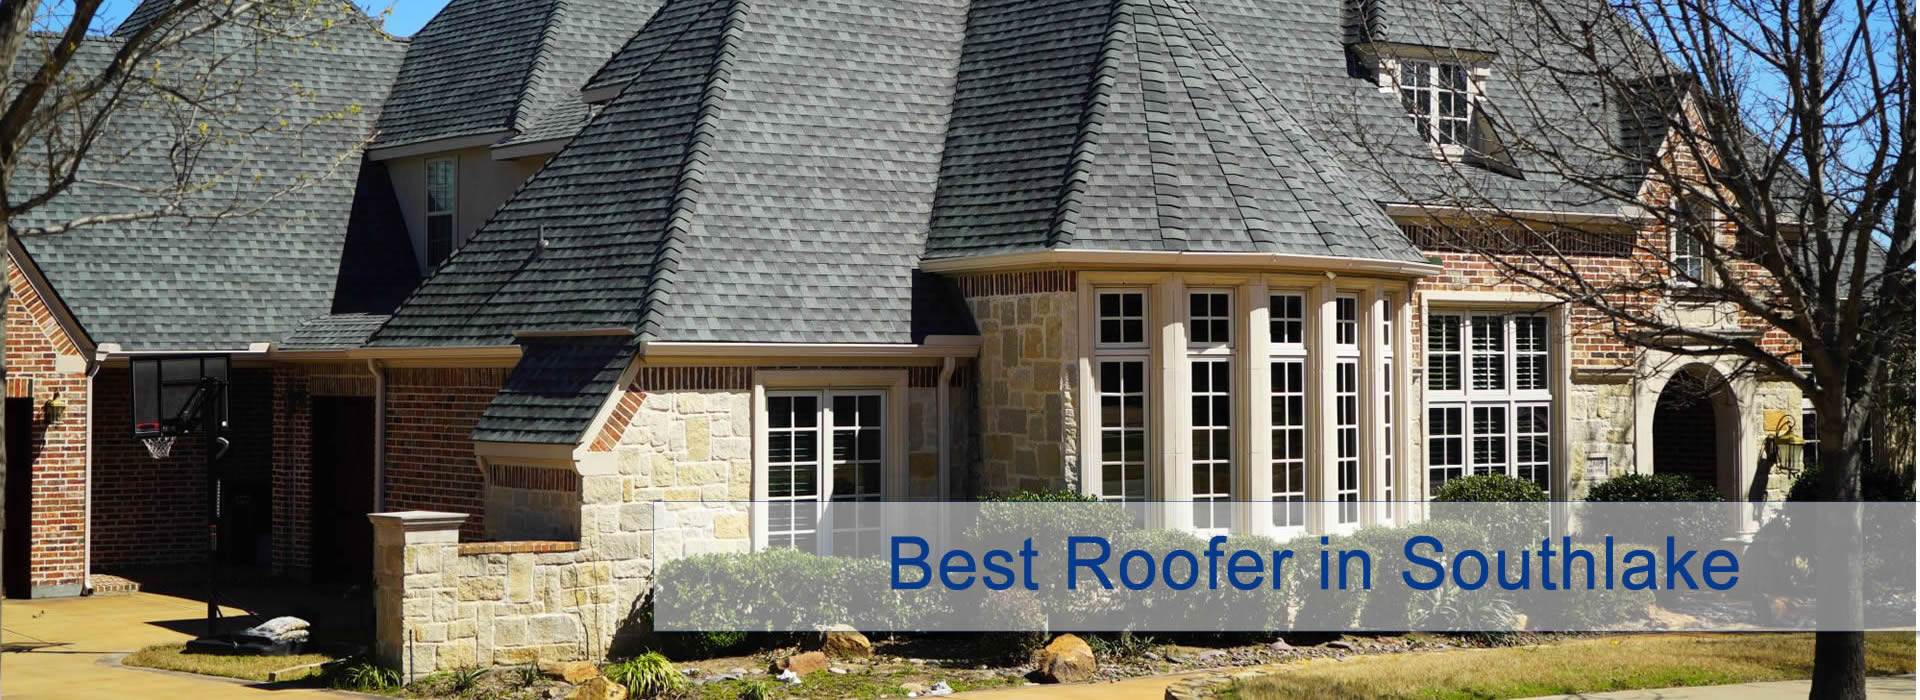 Roofer in Southlake